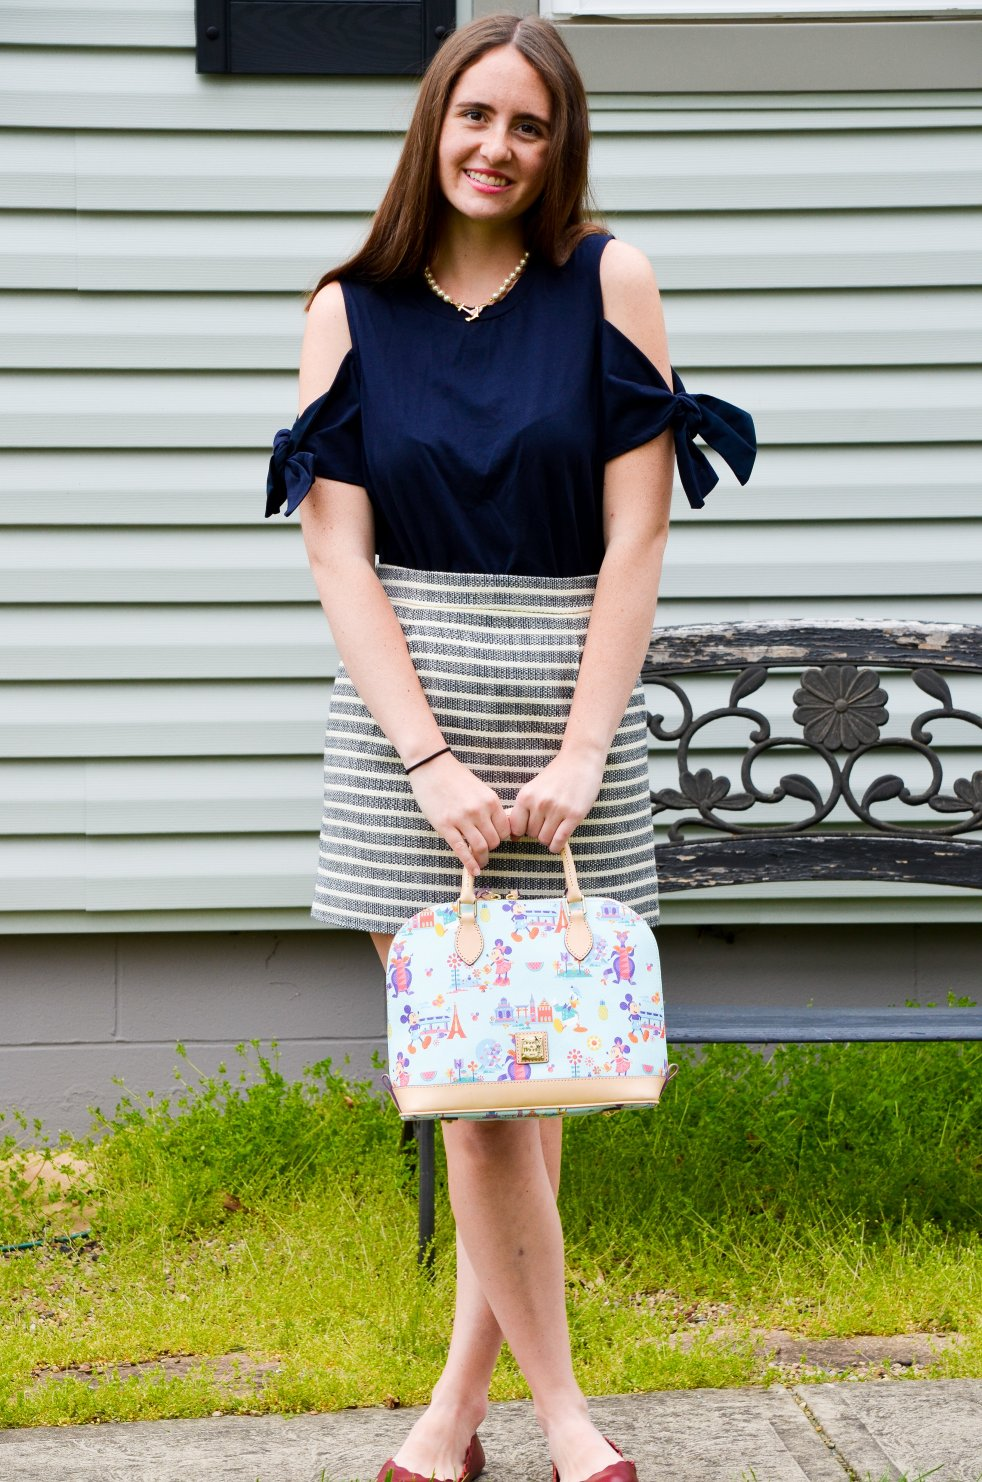 ootd outfit of the day cold shoulder bow top bow tie sleeves momentsofamermaid moments of a mermaid blogger blog fashion style preppy lookbook spring summer what to wear j crew h&M scalloped leather red flats striped skirt dooney & bourke disney world flower and garden festival bag purse pearl necklace kiel james patrick kjp off the shoulder